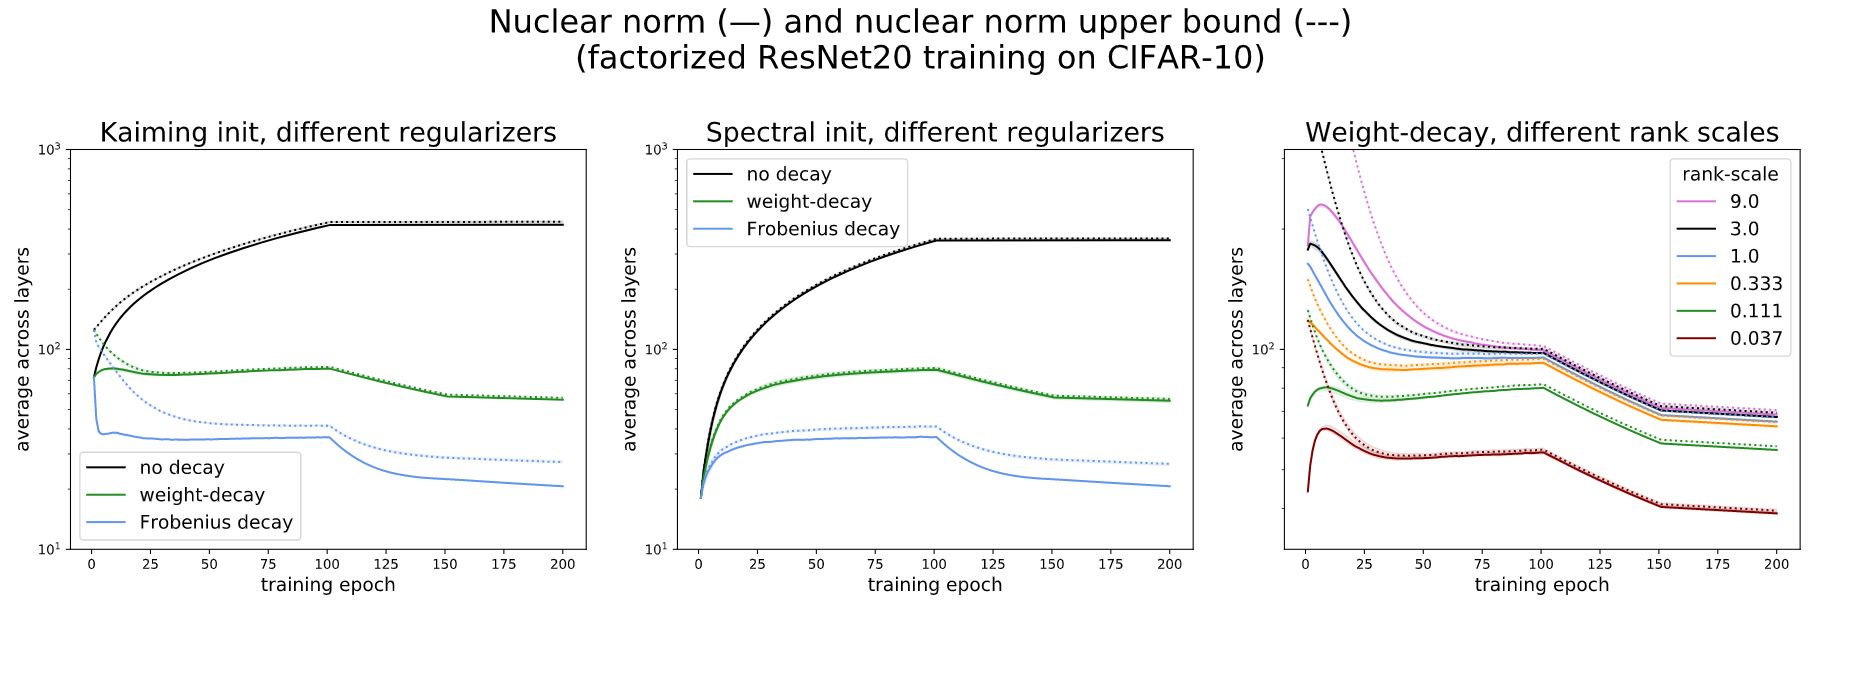 "Three line plots side by side, each with ""training epoch"" on the x-axis and ""average across layers"" on the y-axis. The first, titled ""Kaiming init, different regularizers,"" has three solid lines representing nuclear norm: one in black and labeled ""no-decay,"" one in green and labeled ""weight decay,"" and one in blue and labeled ""Frobenius decay,"" with the first above the second and the second above the third. It also has three unlabeled dotted lines representing the nuclear norm upper bound corresponding to each solid line. Those corresponding to ""no decay"" and ""weight decay"" are very close to their respective solid lines, while the dotted line corresponding to ""Frobenius"" decay is not. The second plot, titled ""Spectral init, different regularizers,"" shows the same result. The last plot, titled ""Weight decay, different rank scales,"" has six pairs of solid and dotted lines labeled and color coordinated by powers of three from –3 to 2; in all cases, the dotted lines are very close to their respective solid lines."